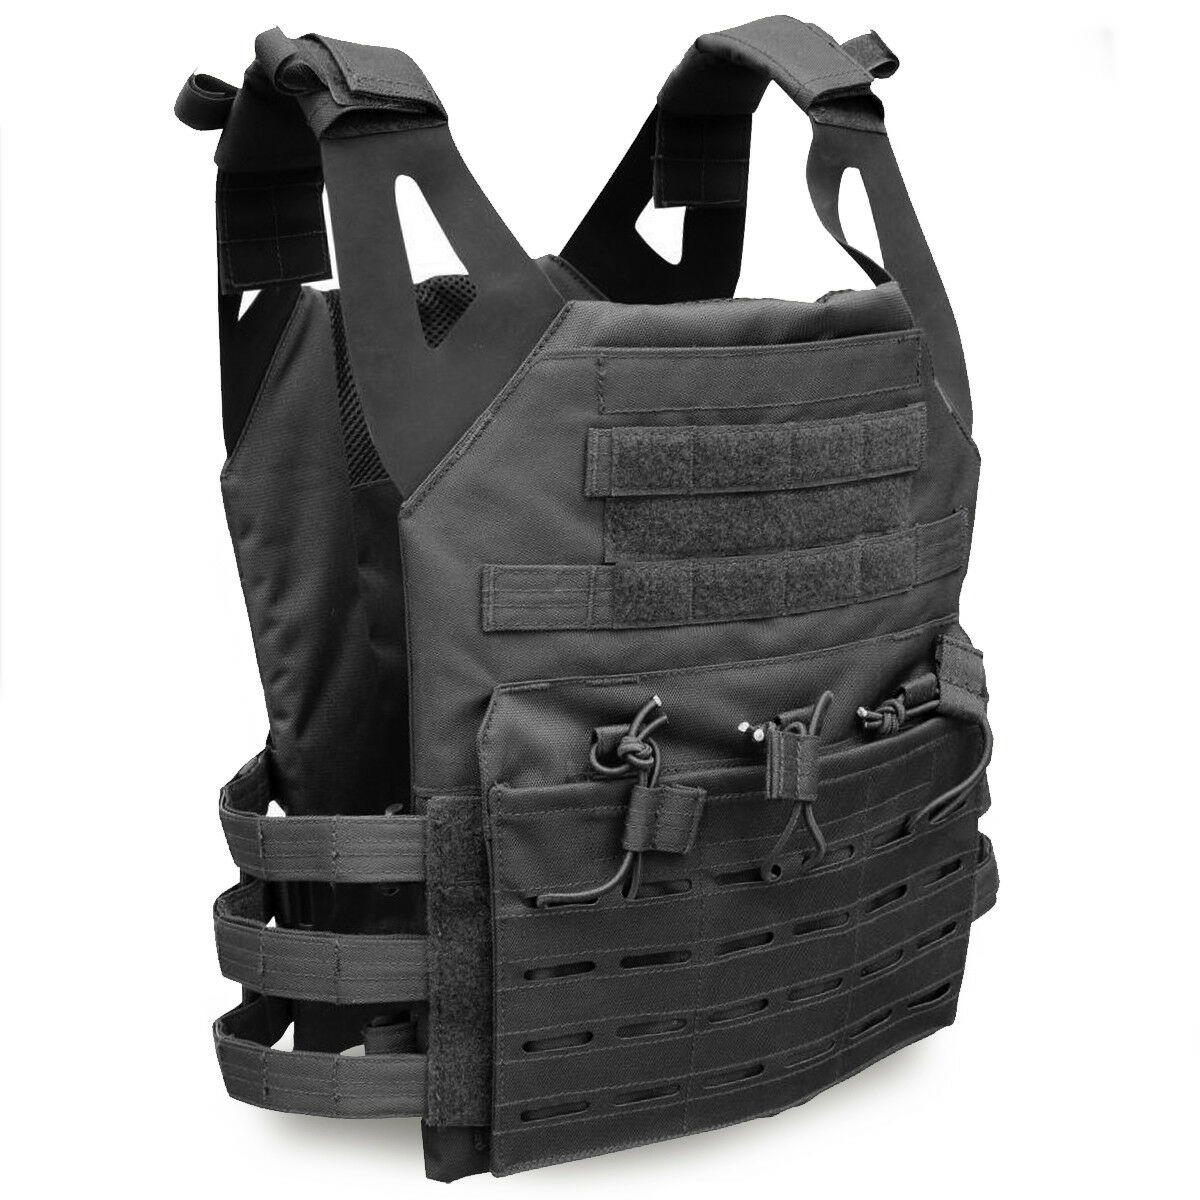 Viper Special Ops Tactical Military Modular Armour MOLLE Plate Carrier Carrier Plate Pouch d1c889